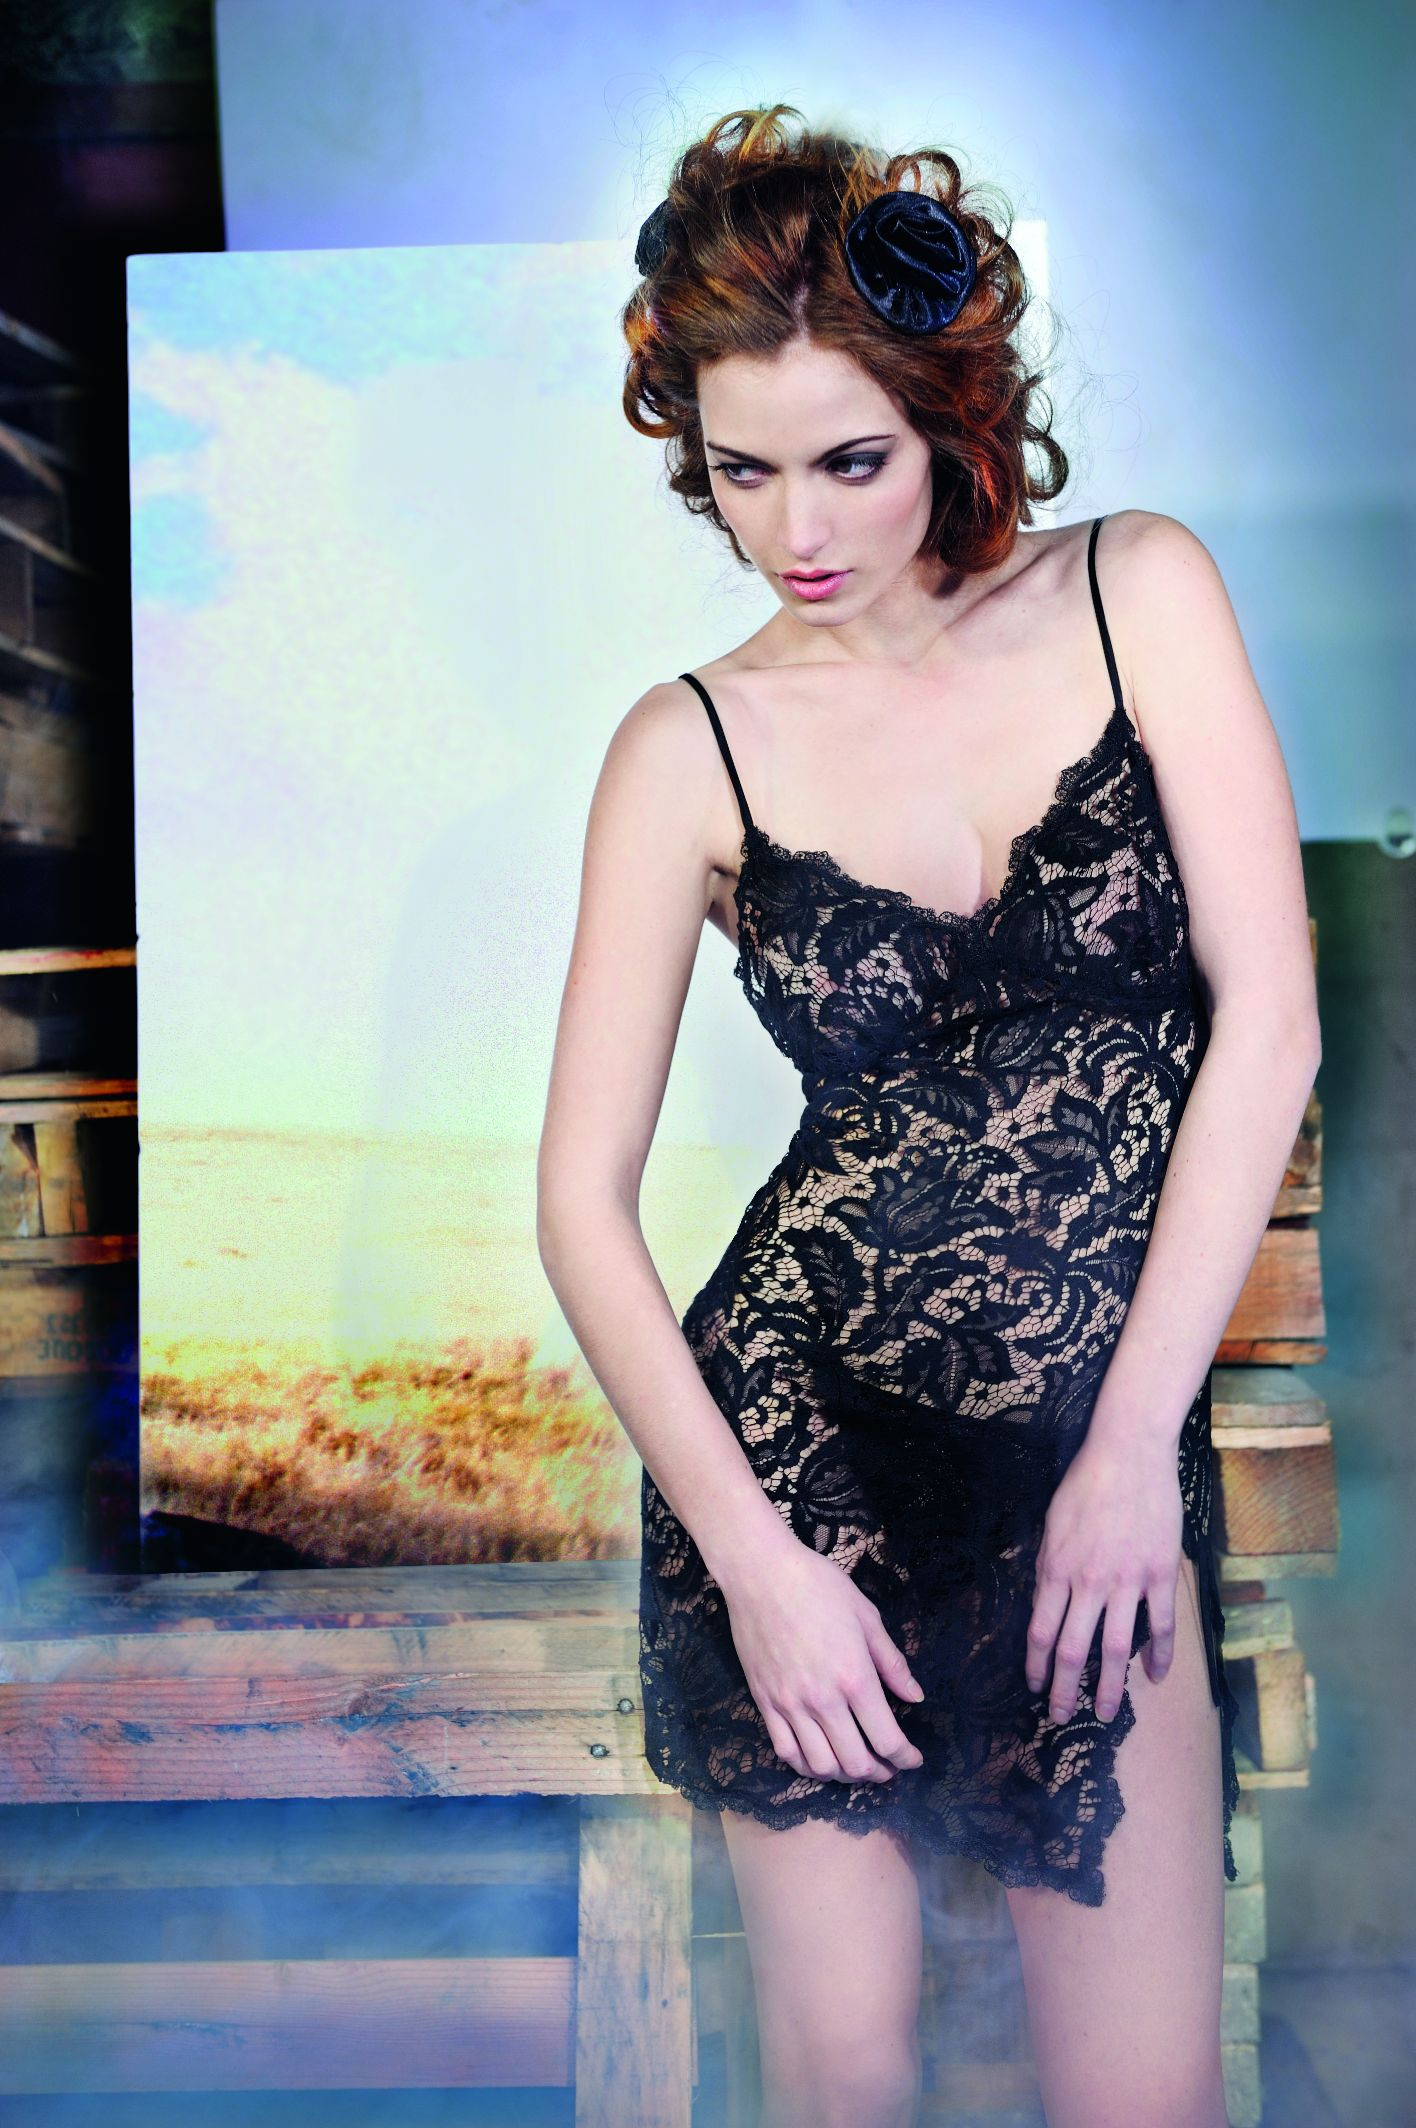 Sandra Dee Exquisite Lingerie Sumptuous Nightwear And Elegant Swimwear Page 5